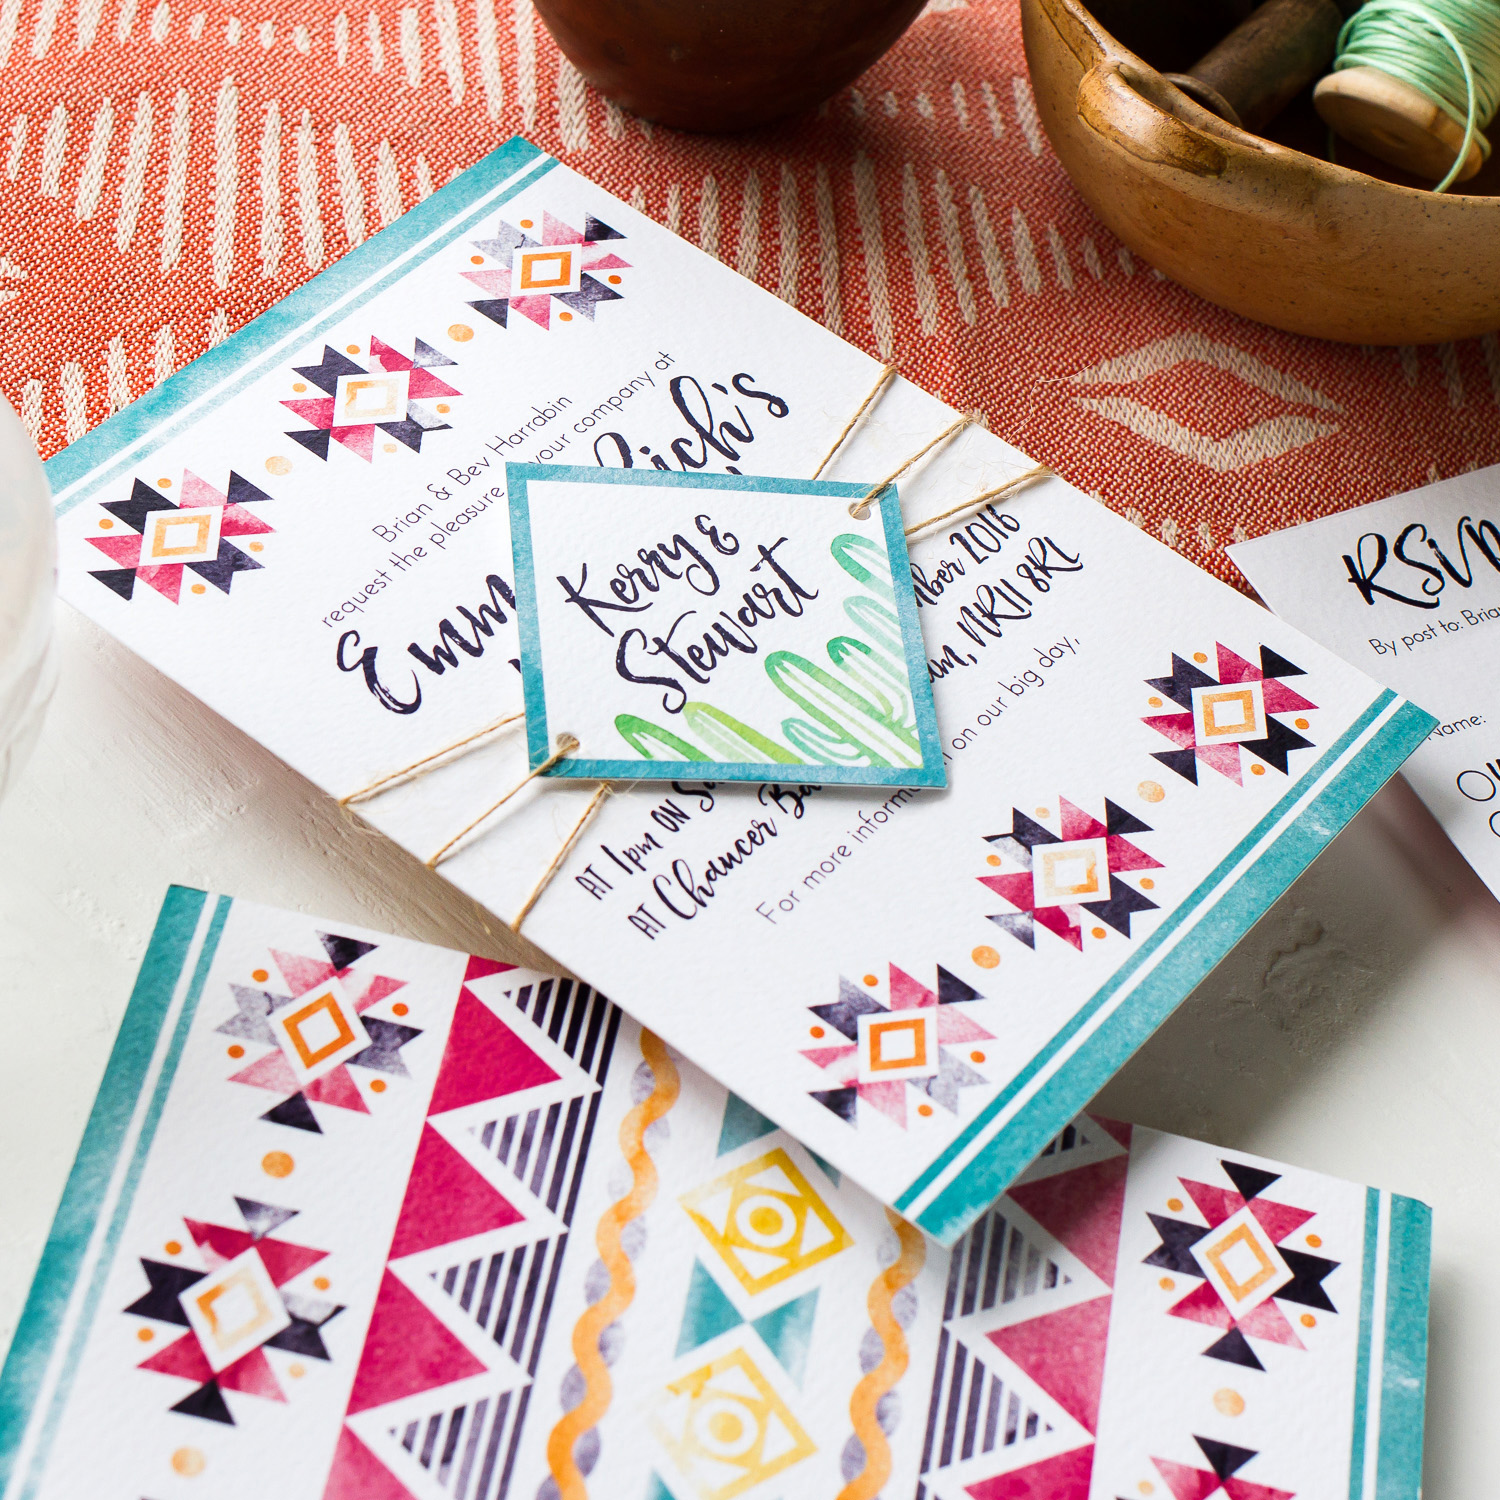 Emma and Rich Mexican Themed Custom Wedding Sationery with Mexican Pattern and Hand Painted Watercolour Cactus 3 - Pingle Pie.jpg